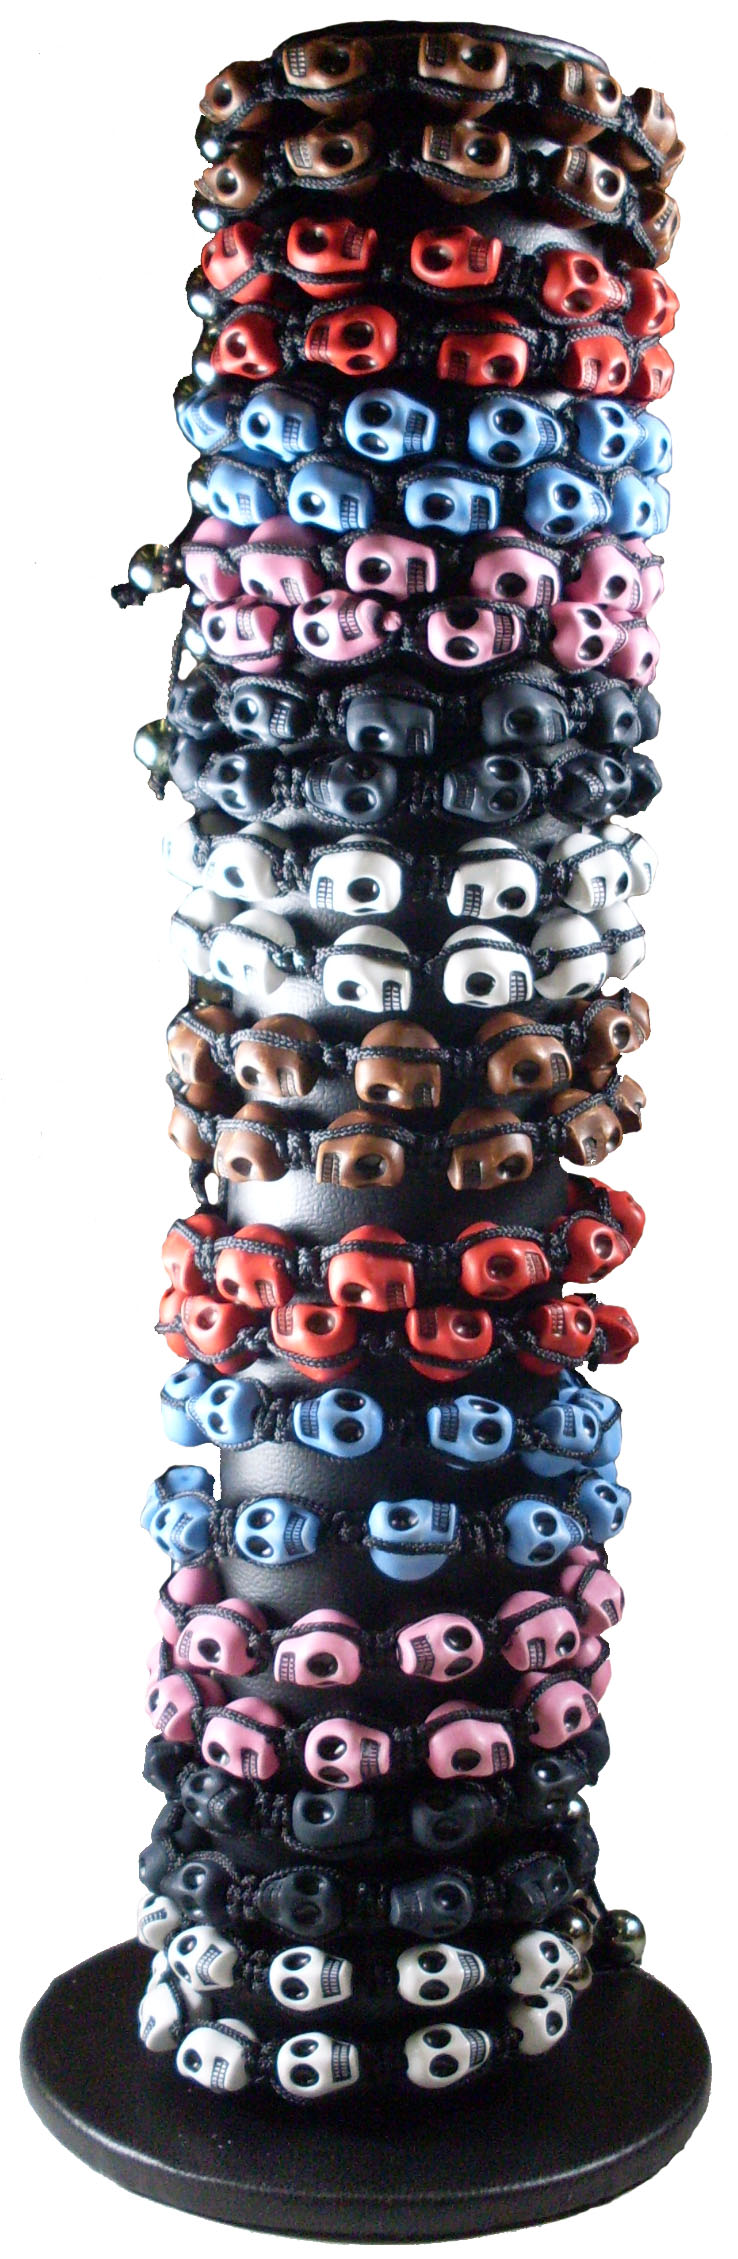 Reduced Price for Special Limited Time Skull Shambala Bracelets Pre-Pack